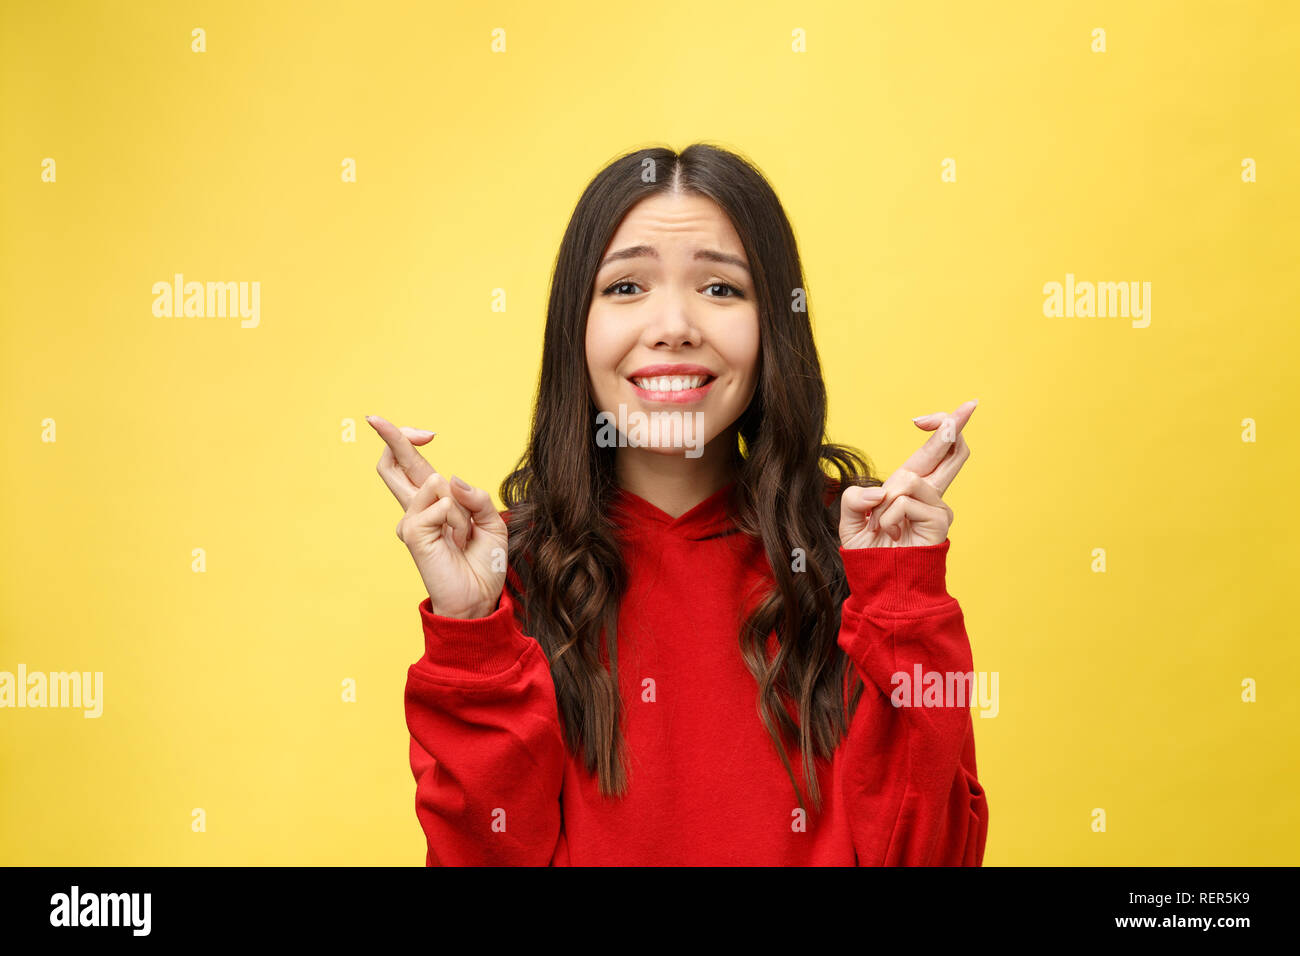 Intrigued woman in praying with crossed fingers and looking away over yellow background - Stock Image